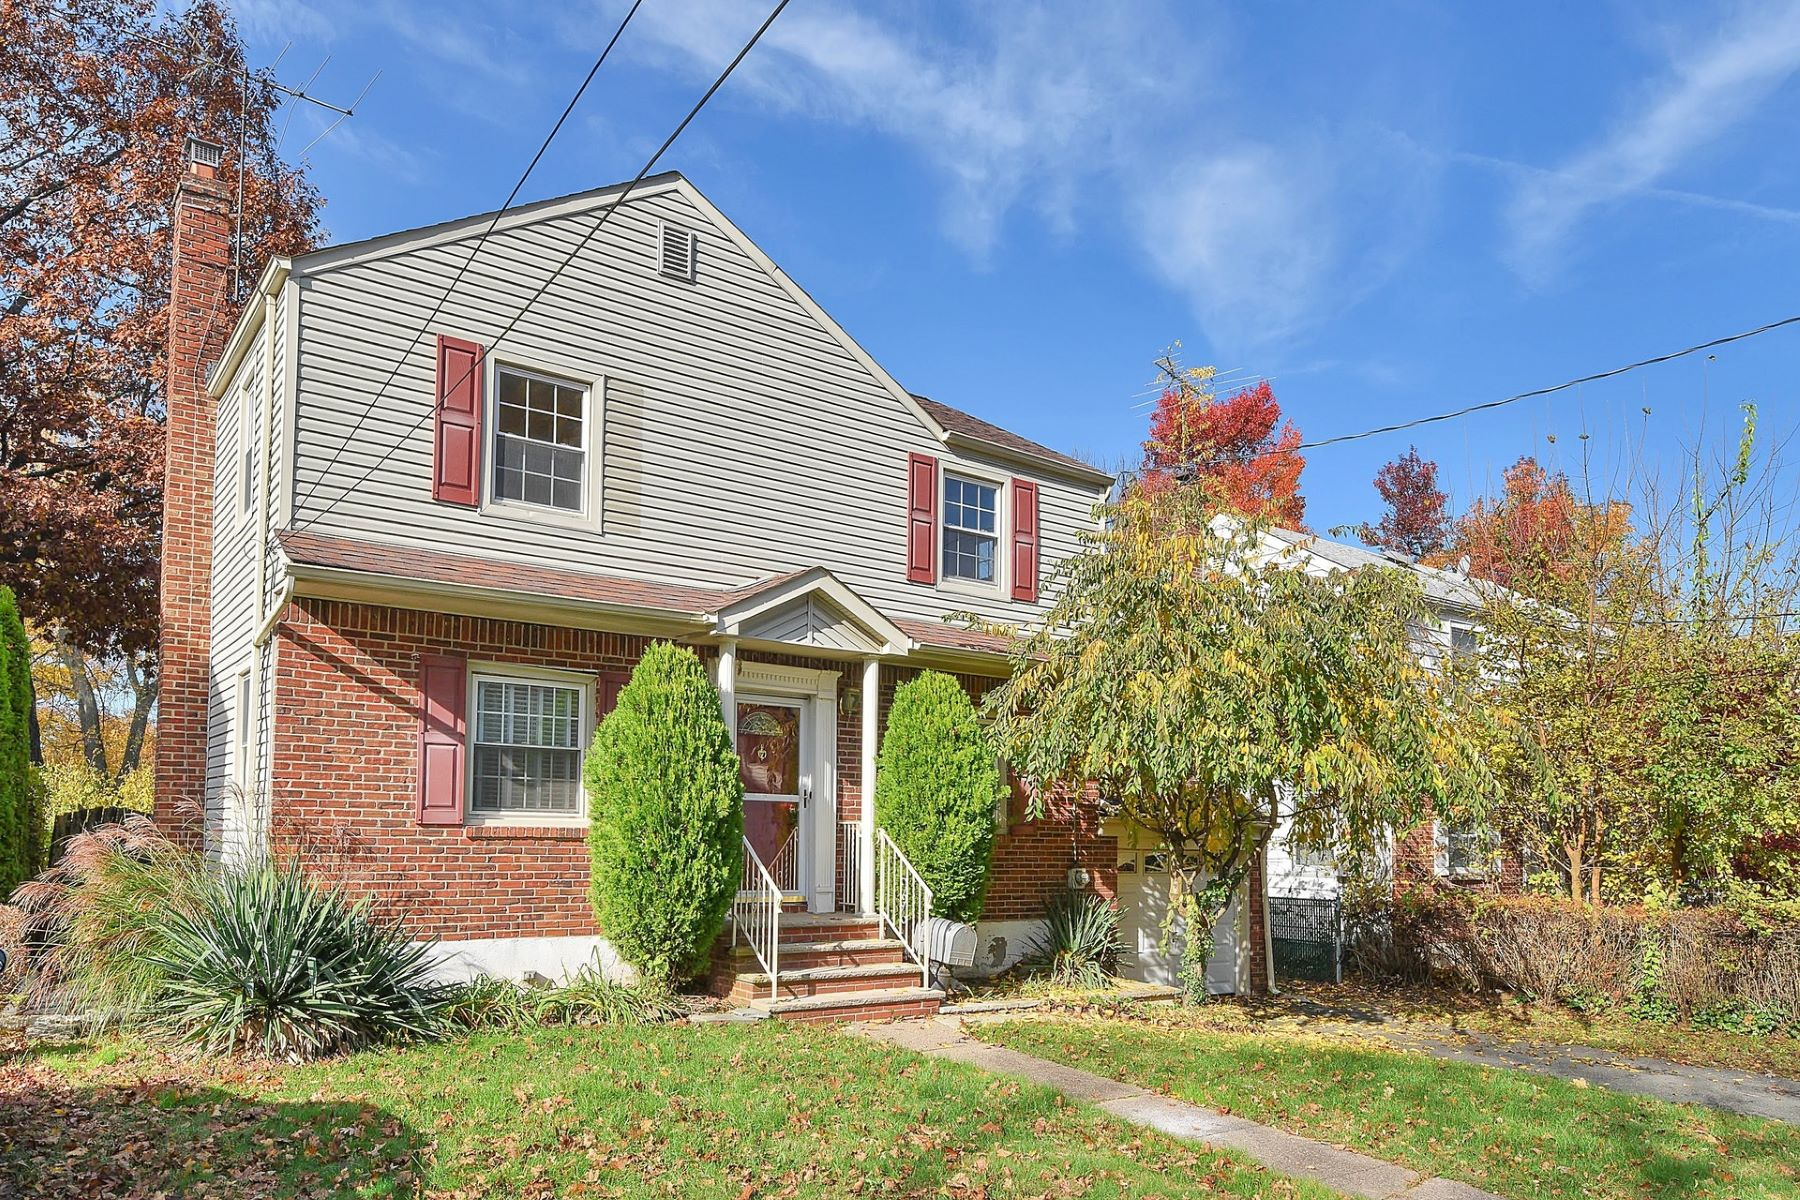 Single Family Home for Sale at Center Hall Colonial 24 Hillcrest Drive, Dumont, New Jersey 07628 United States